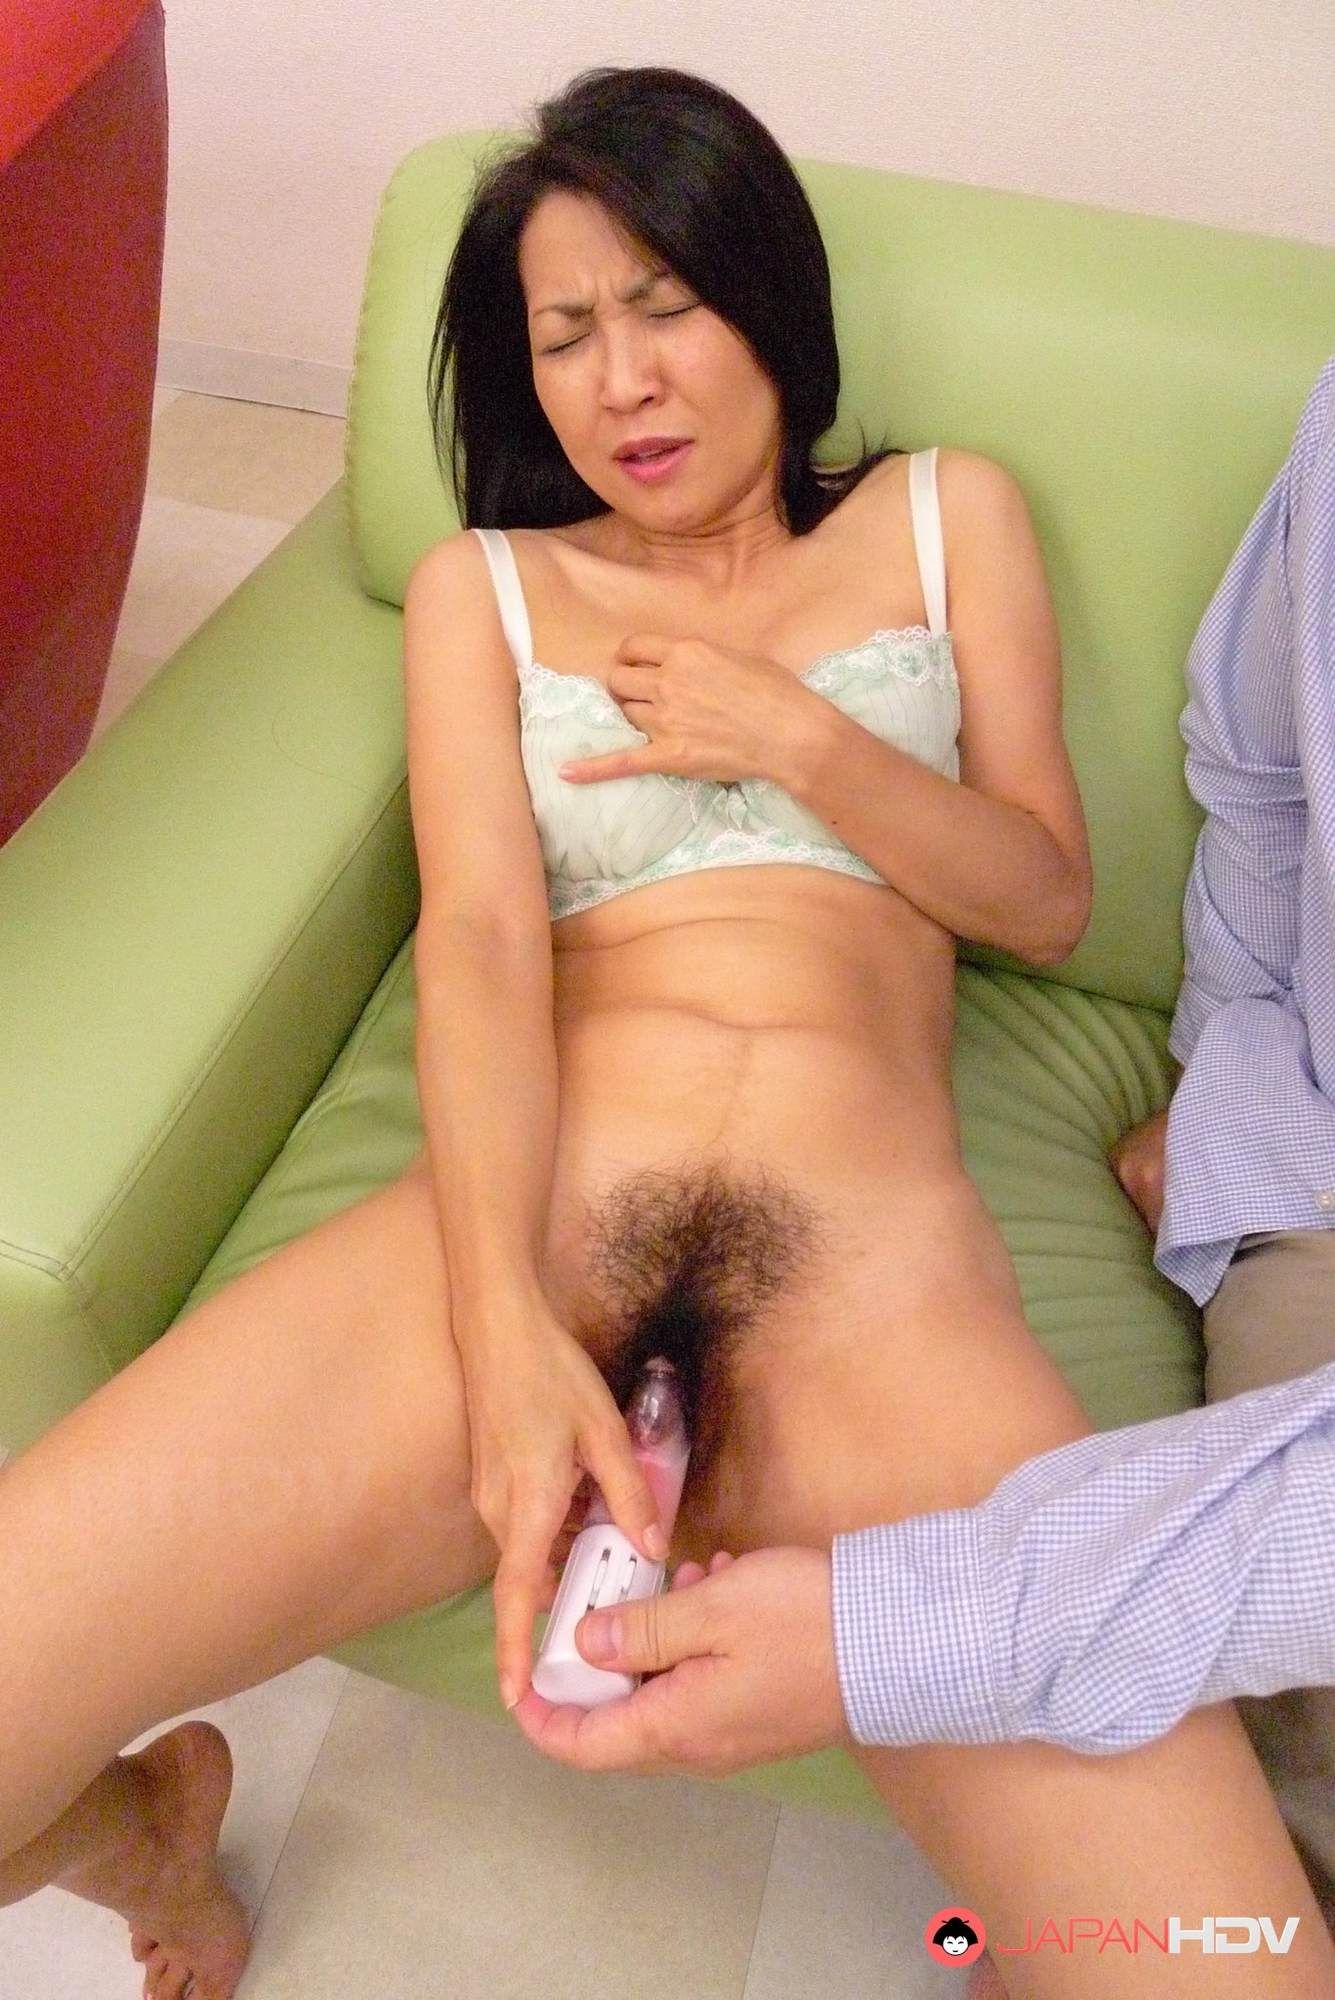 Japan boobs pussy massage